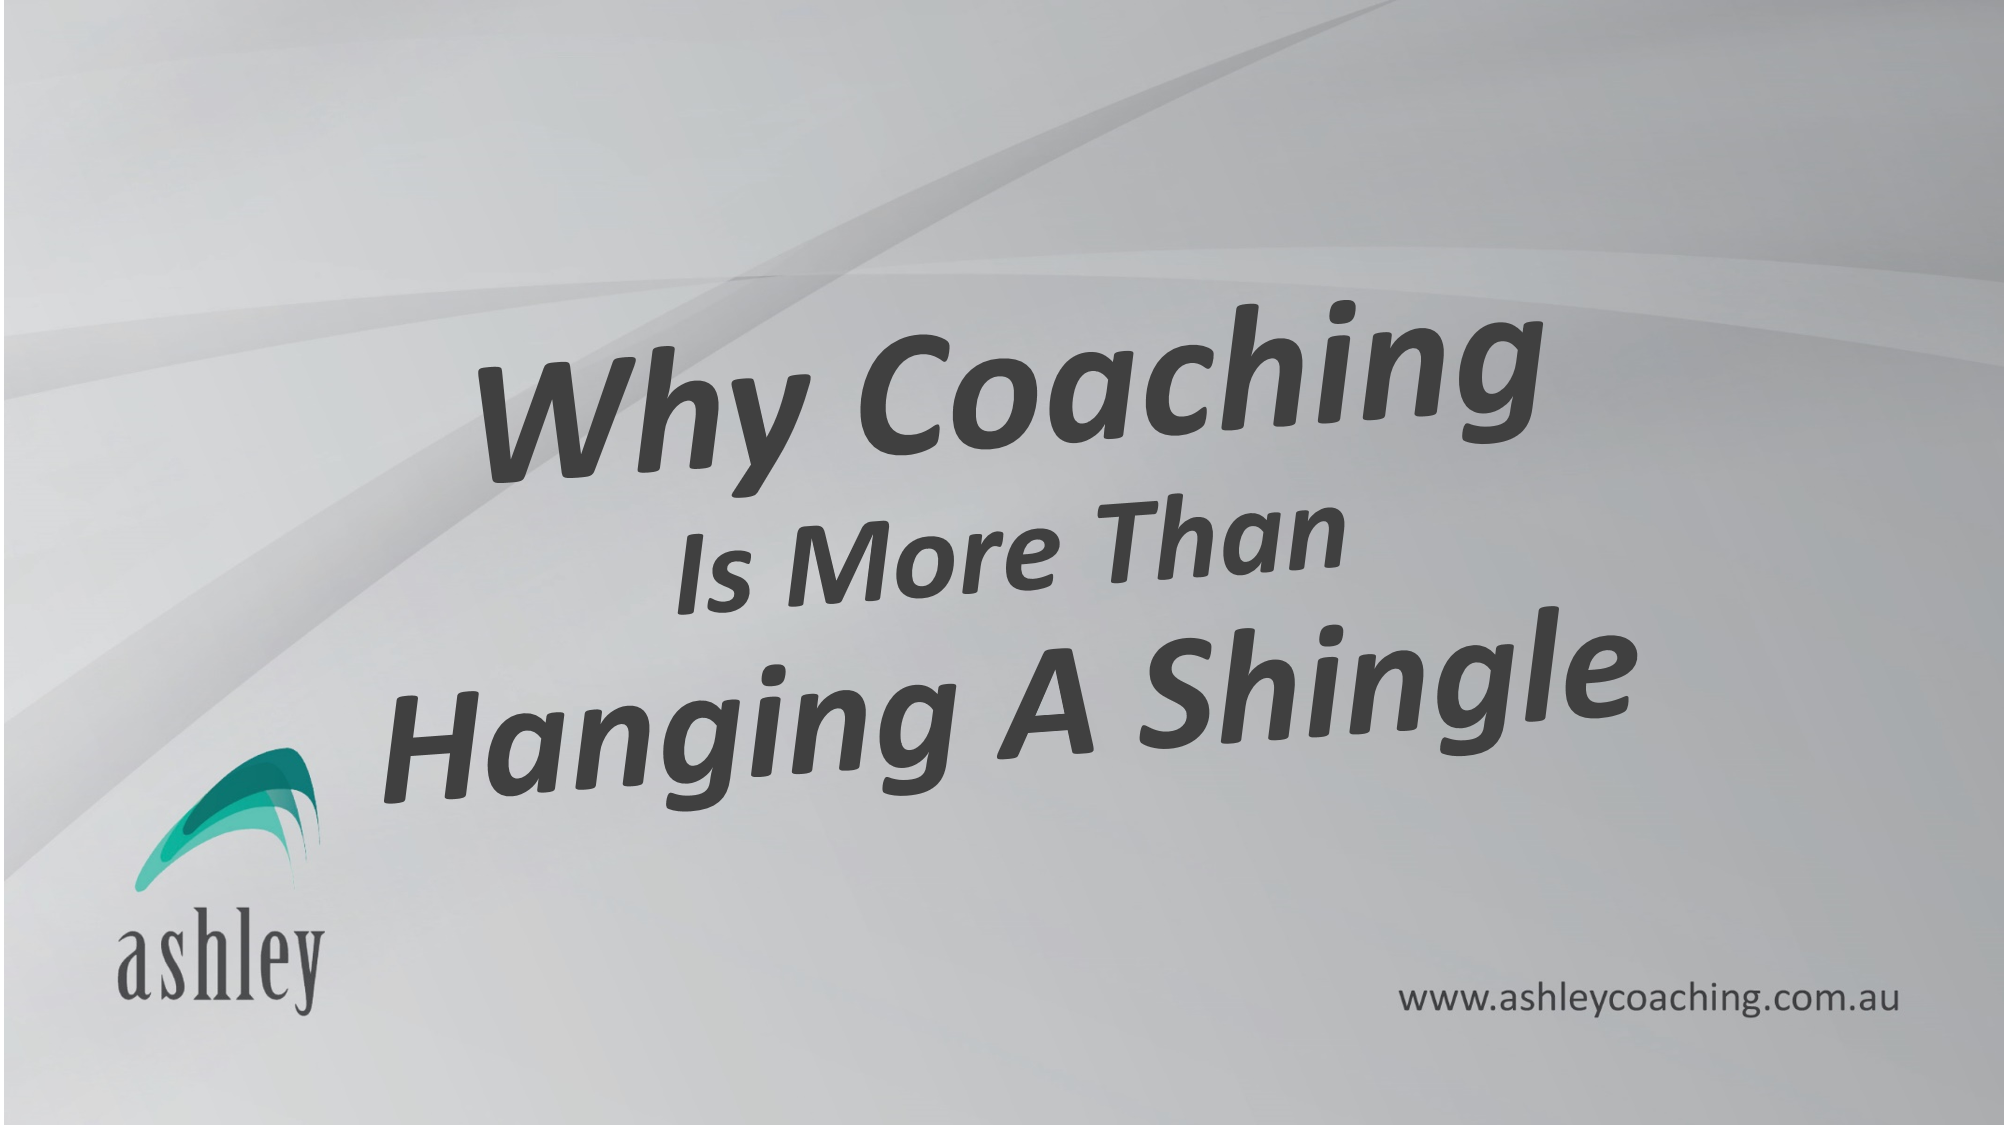 Why Coaching Is More Than Hanging A Shingle